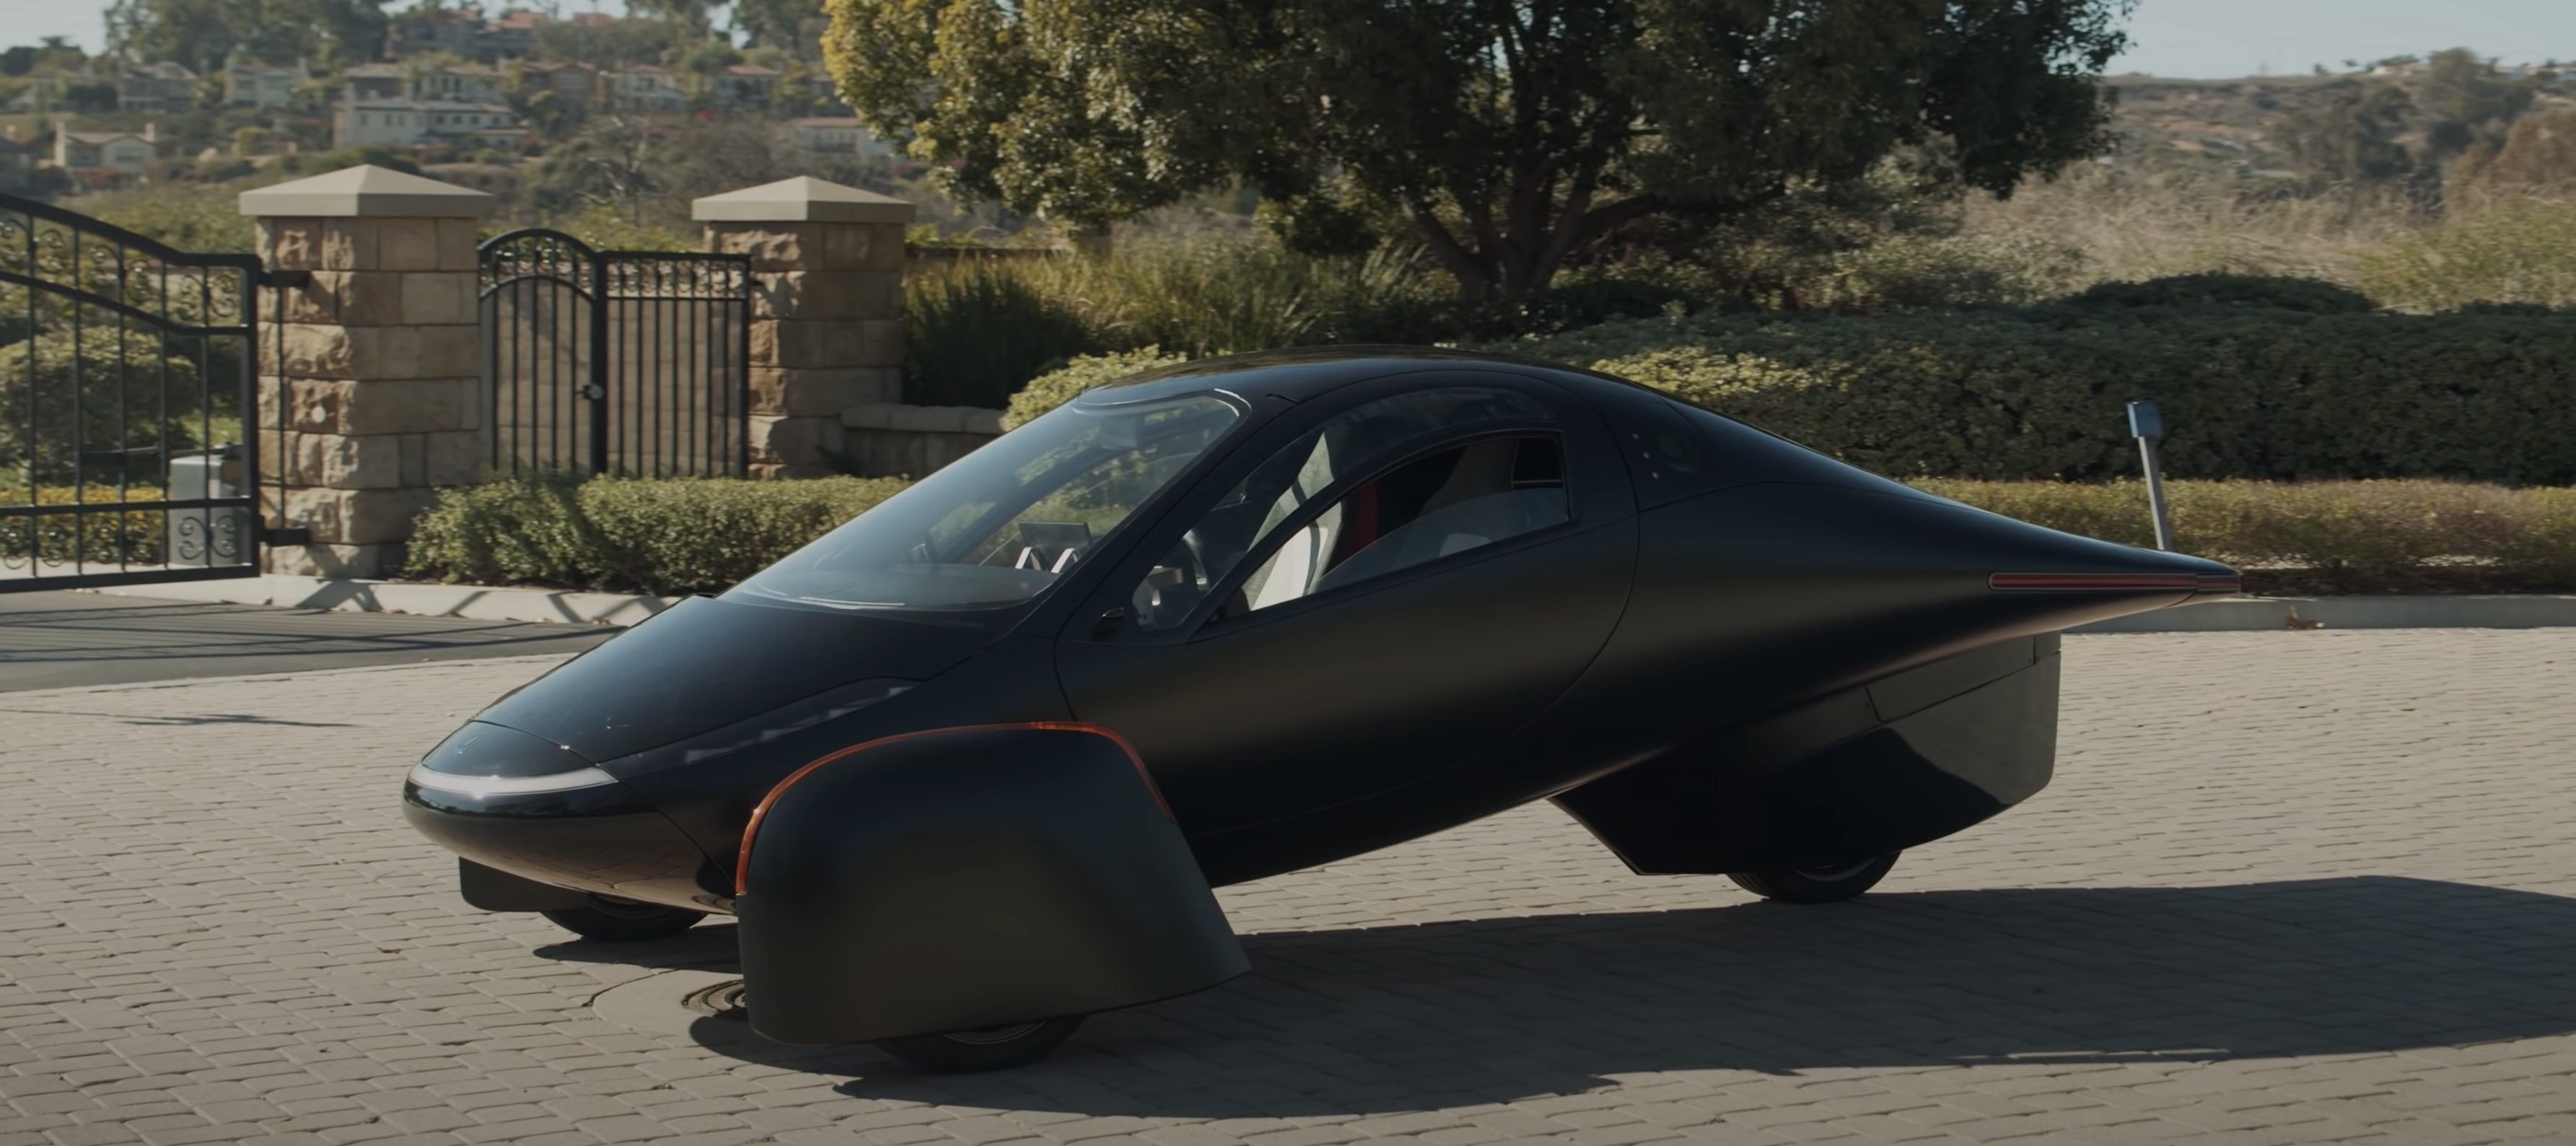 Aptera unveils super-efficient electric car with up to 1,000 miles -  Electrek